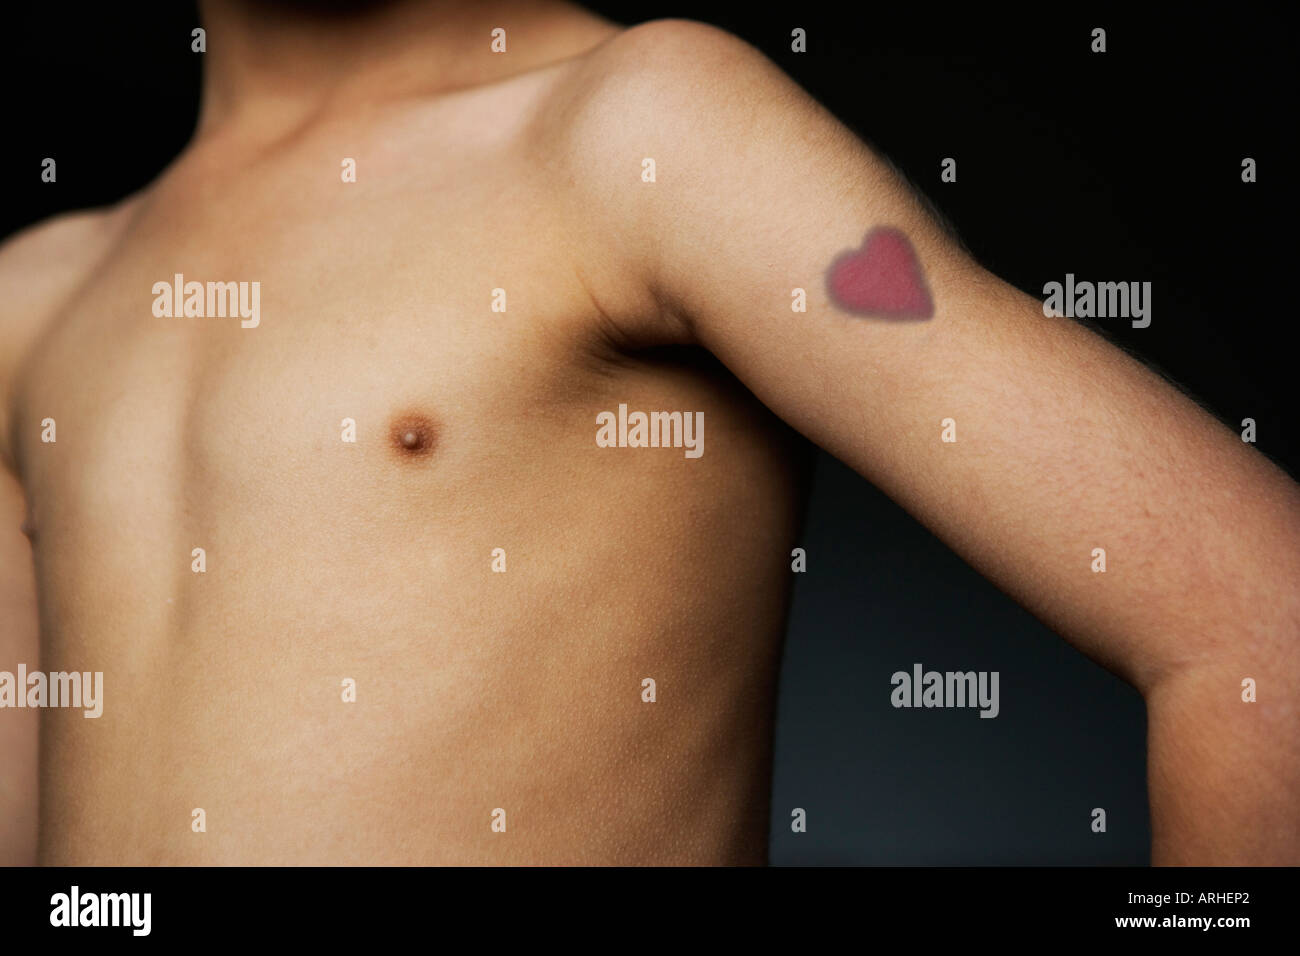 boy with bare chest and heart tattoo stock photo 9176033 alamy